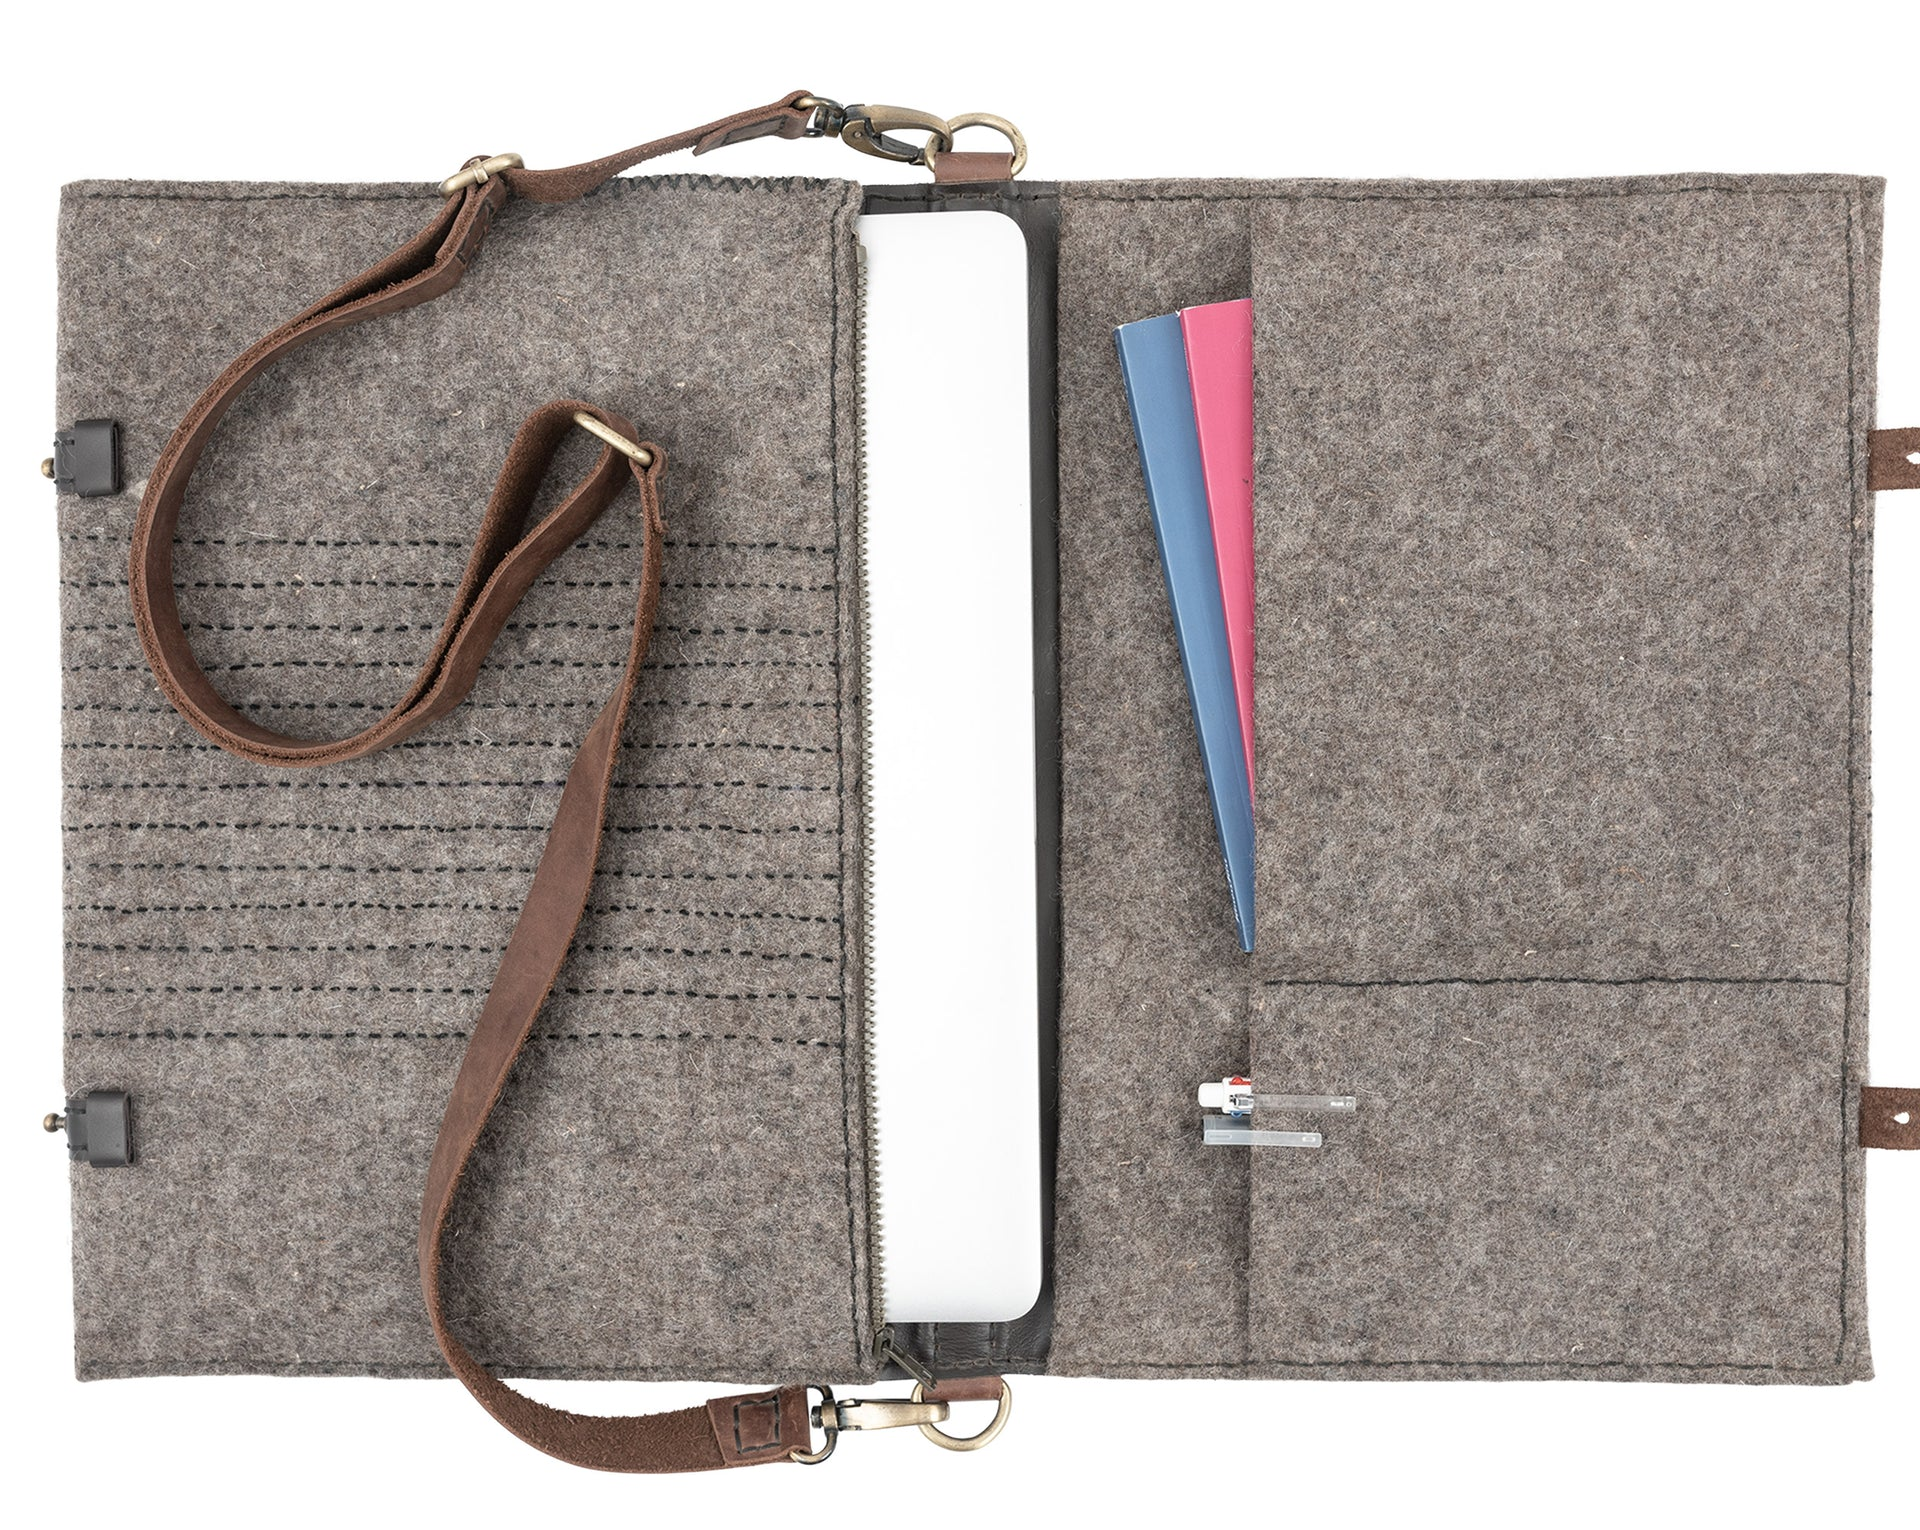 Kantha Laptop Bag